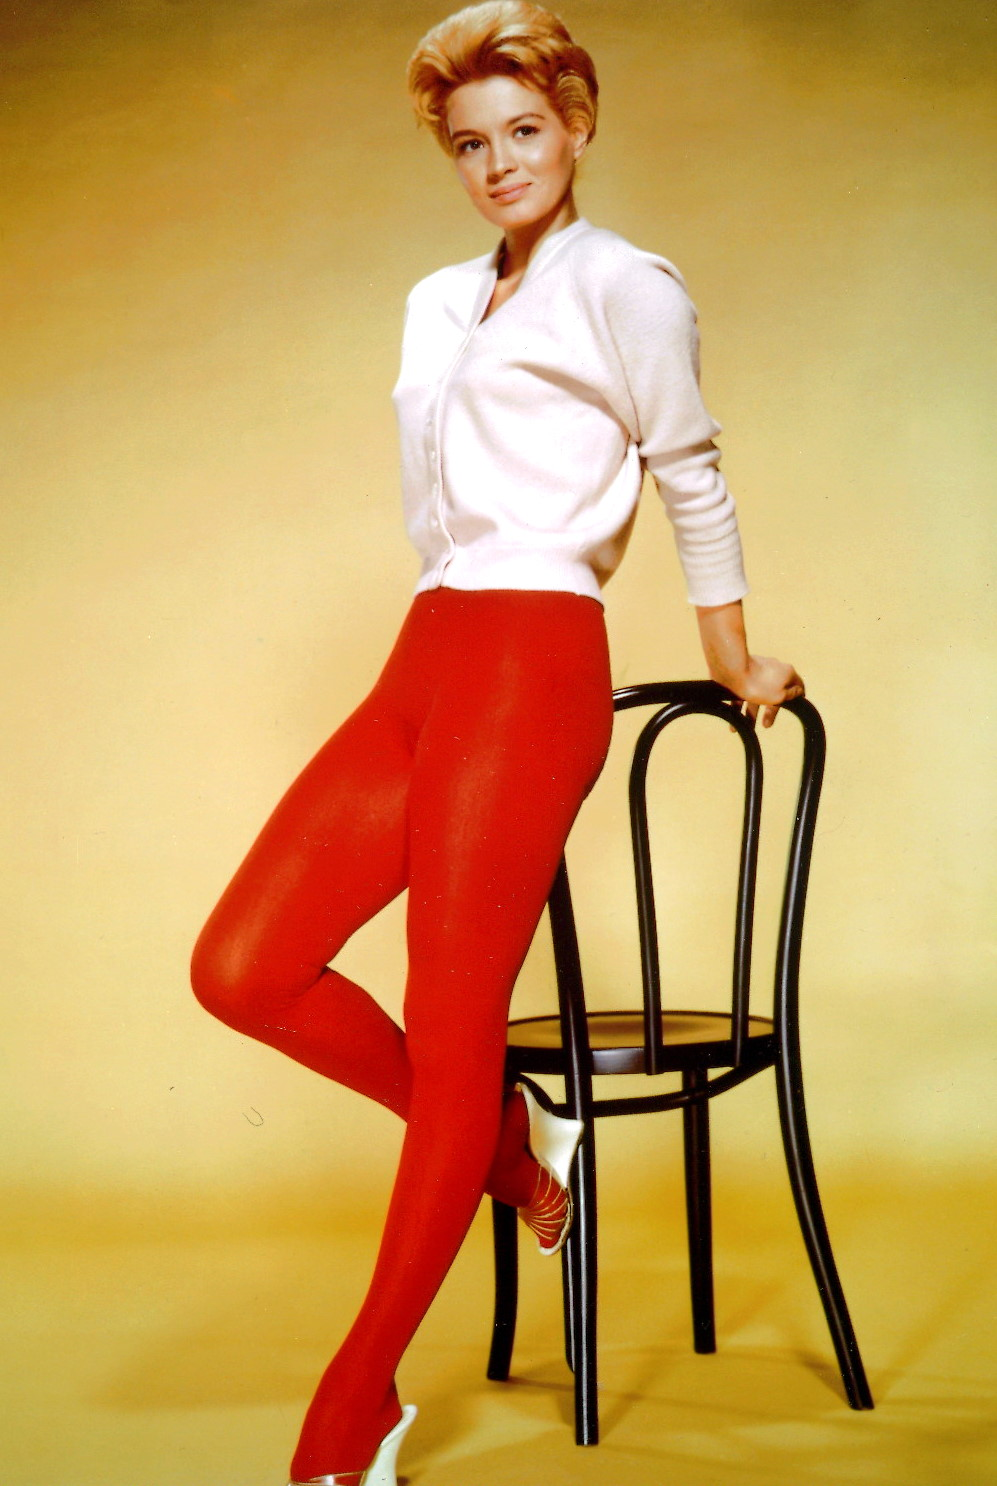 Dyan cannon in pantyhose